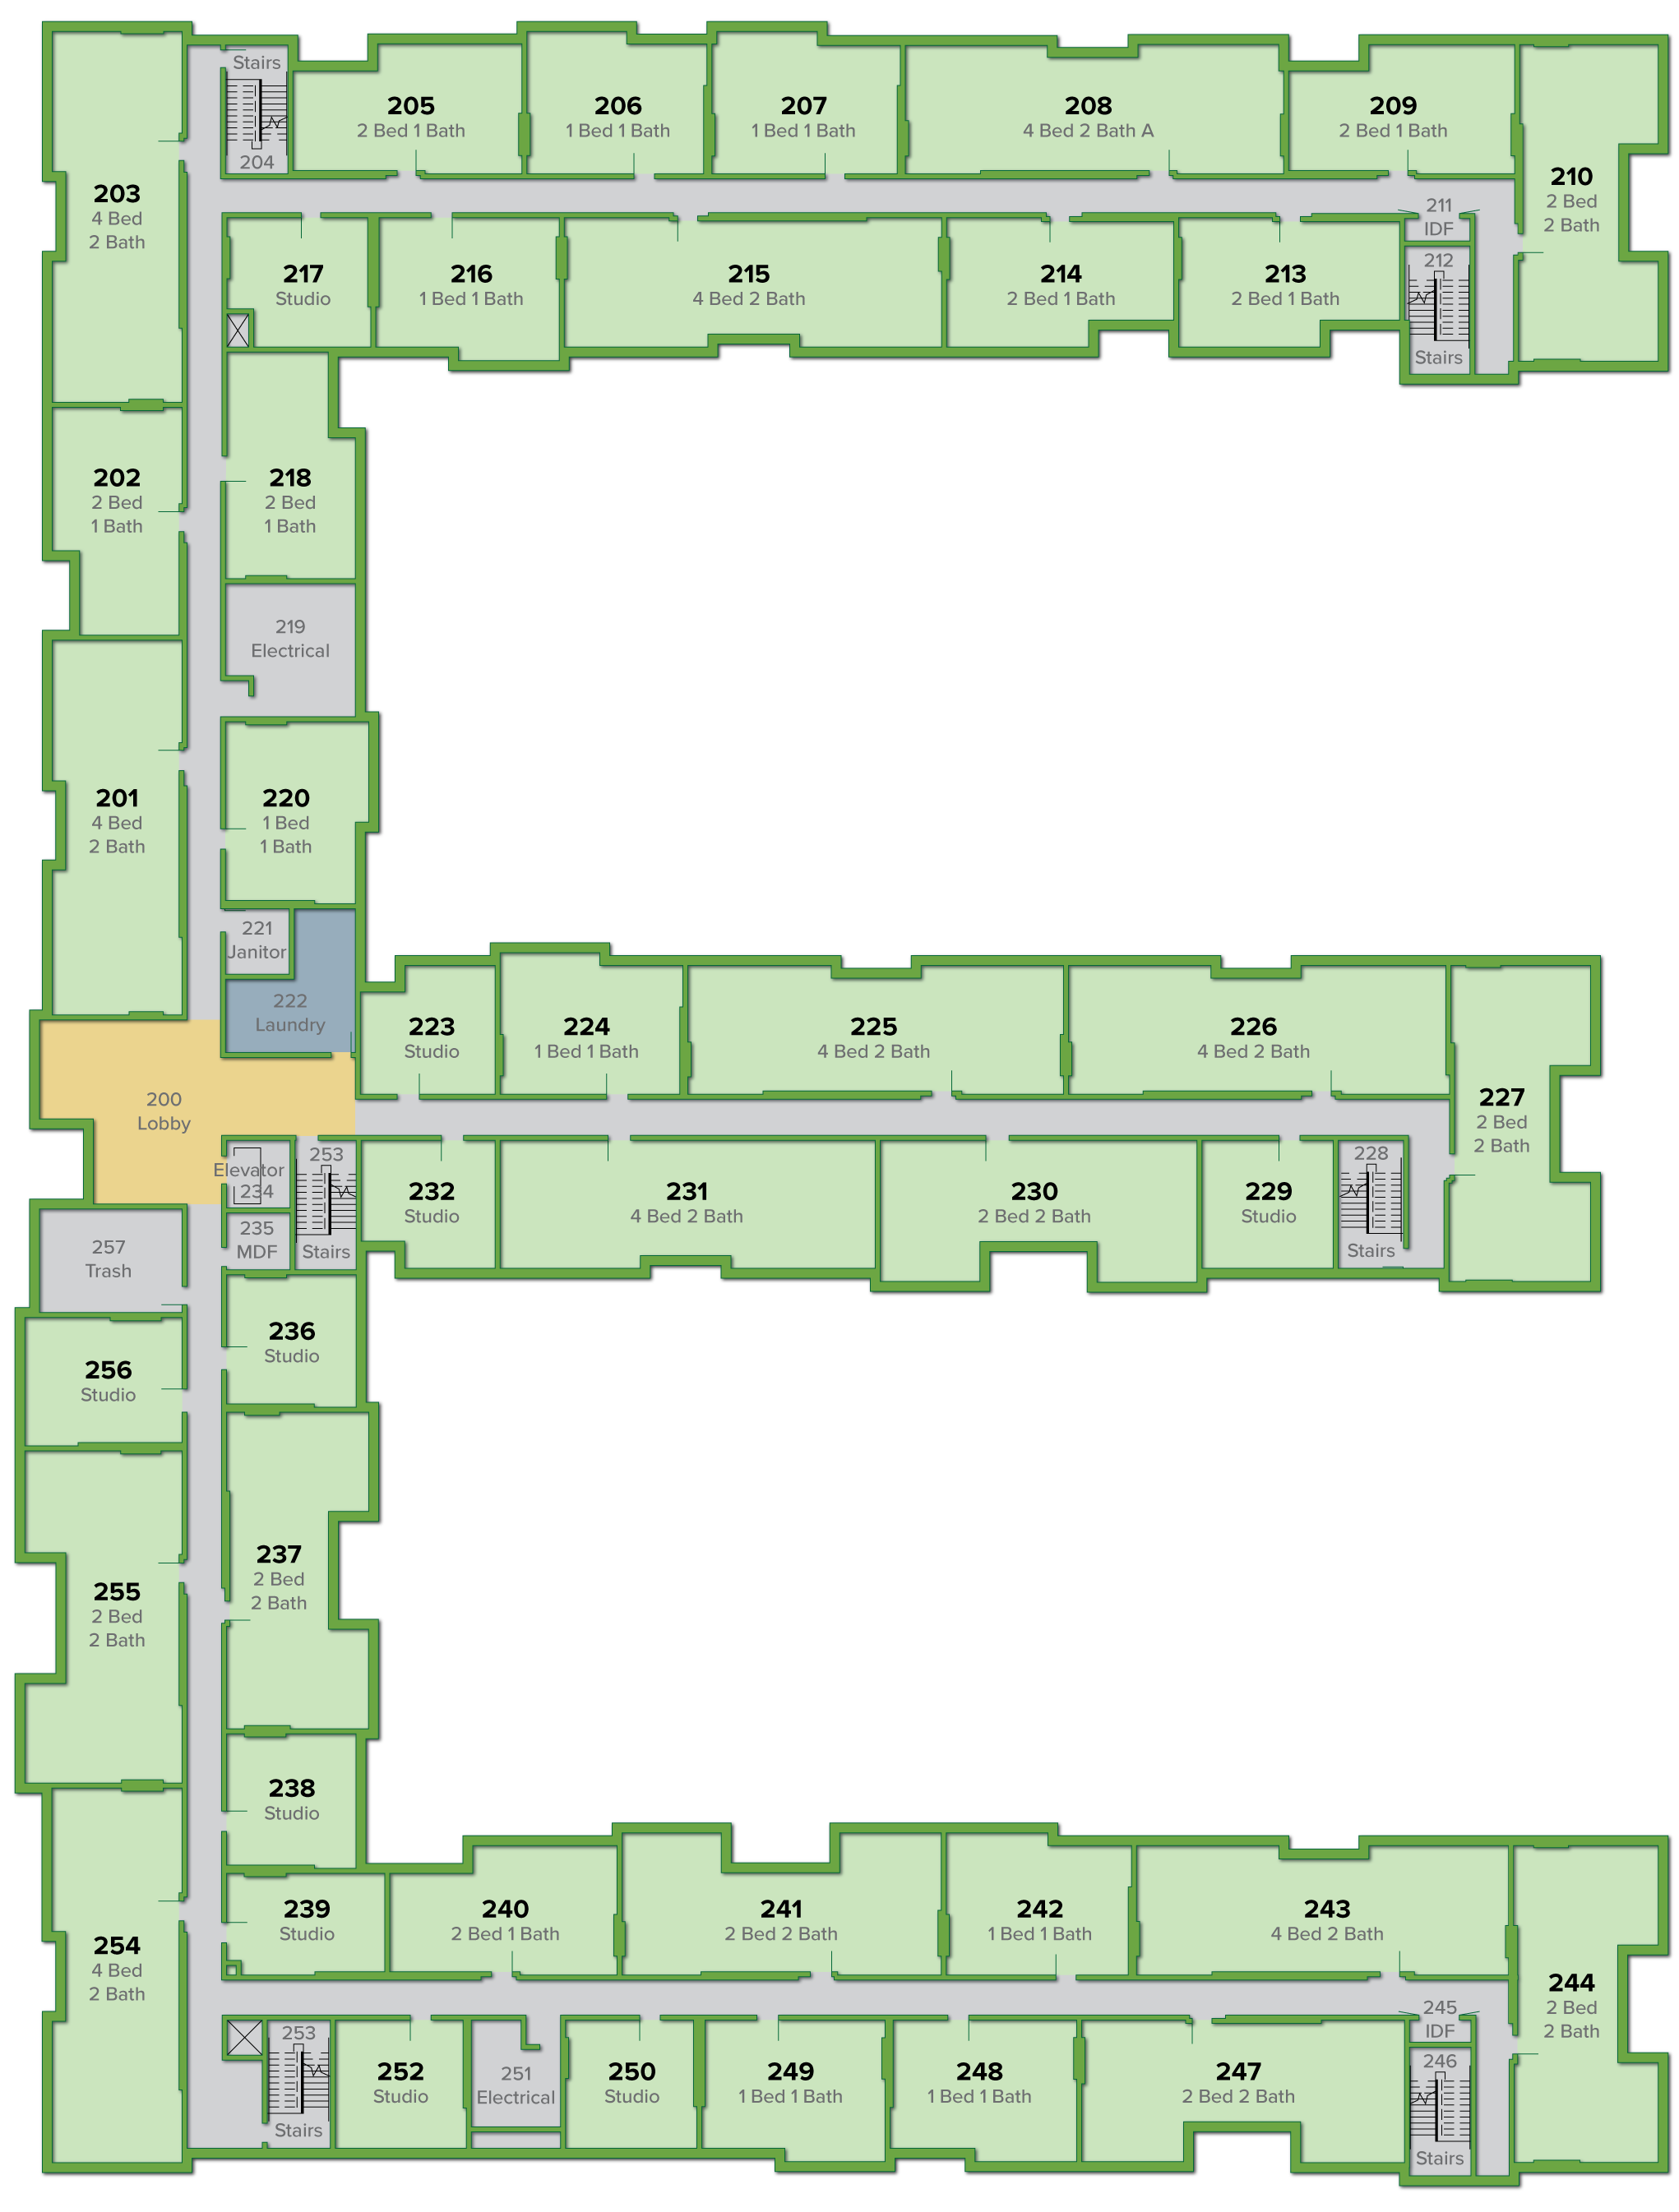 298 Celadon Street Floor Plans The Green At West Village Floor Plans Uc Davis Student Housing And Dining Services